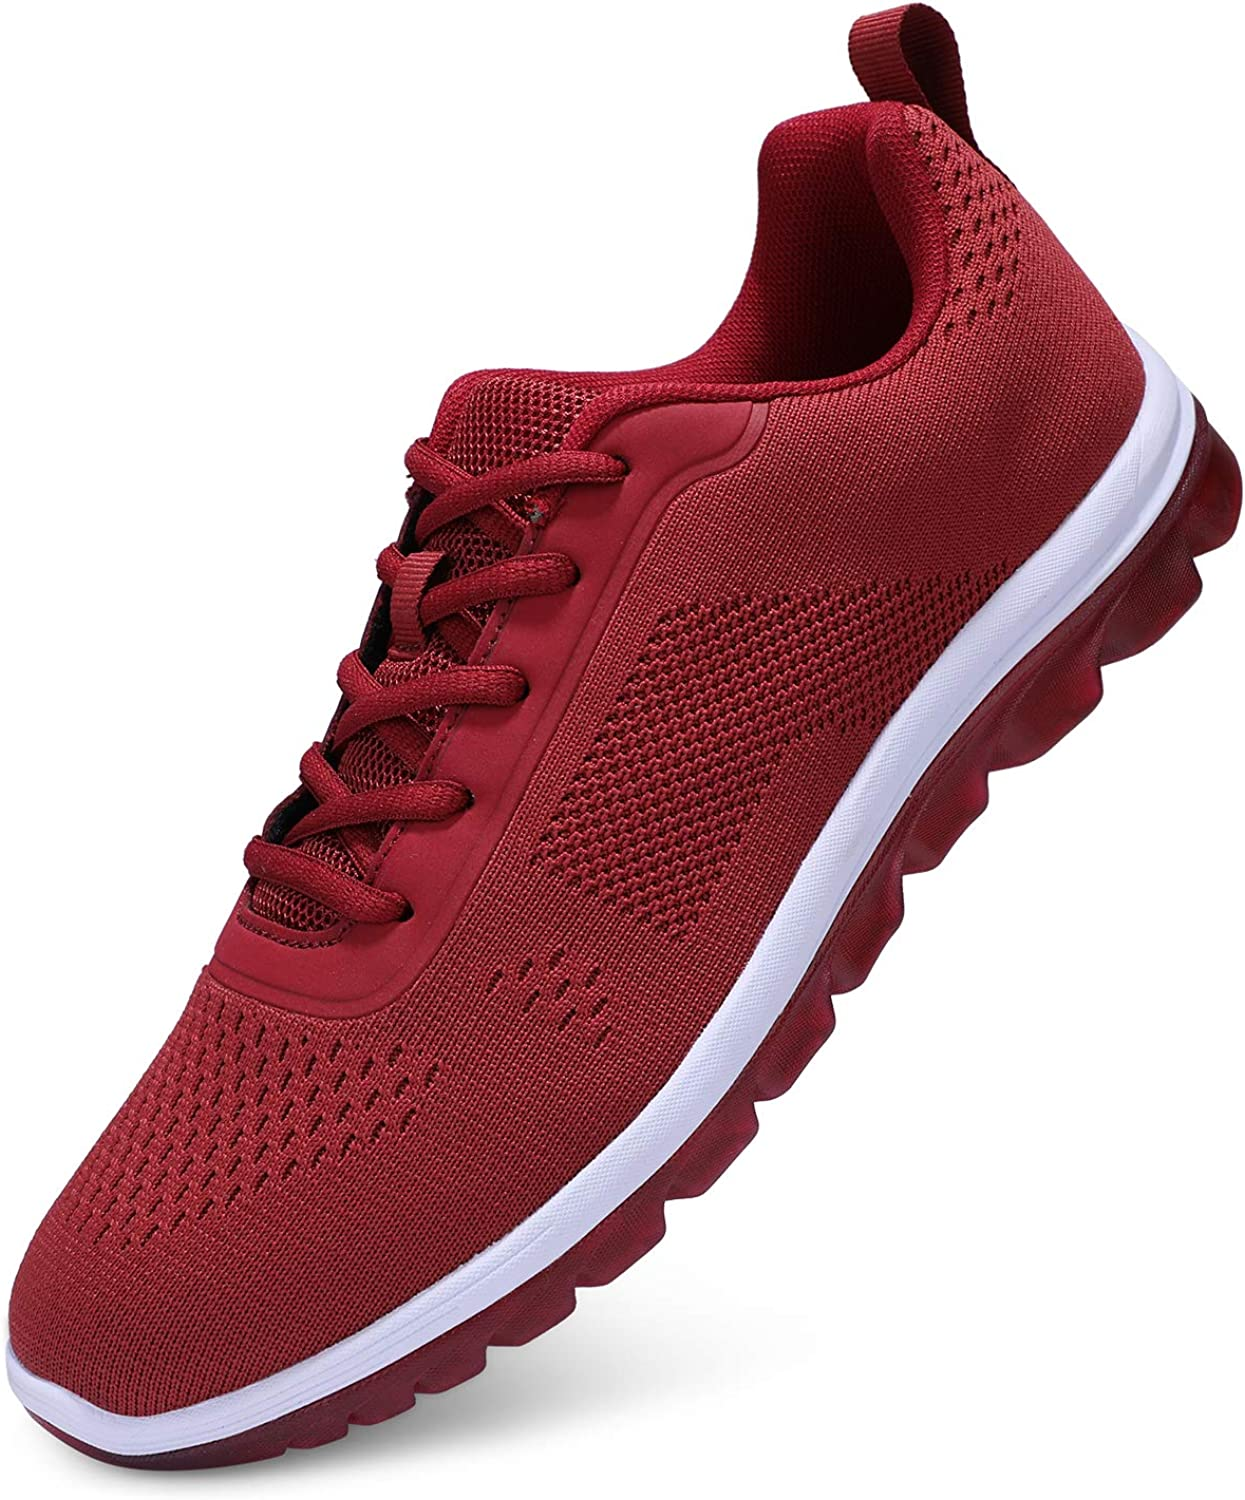 UUBARIS Men's Clearance SALE! Limited time! Max 80% OFF Walking Shoes Non Breathable Running Li Slip